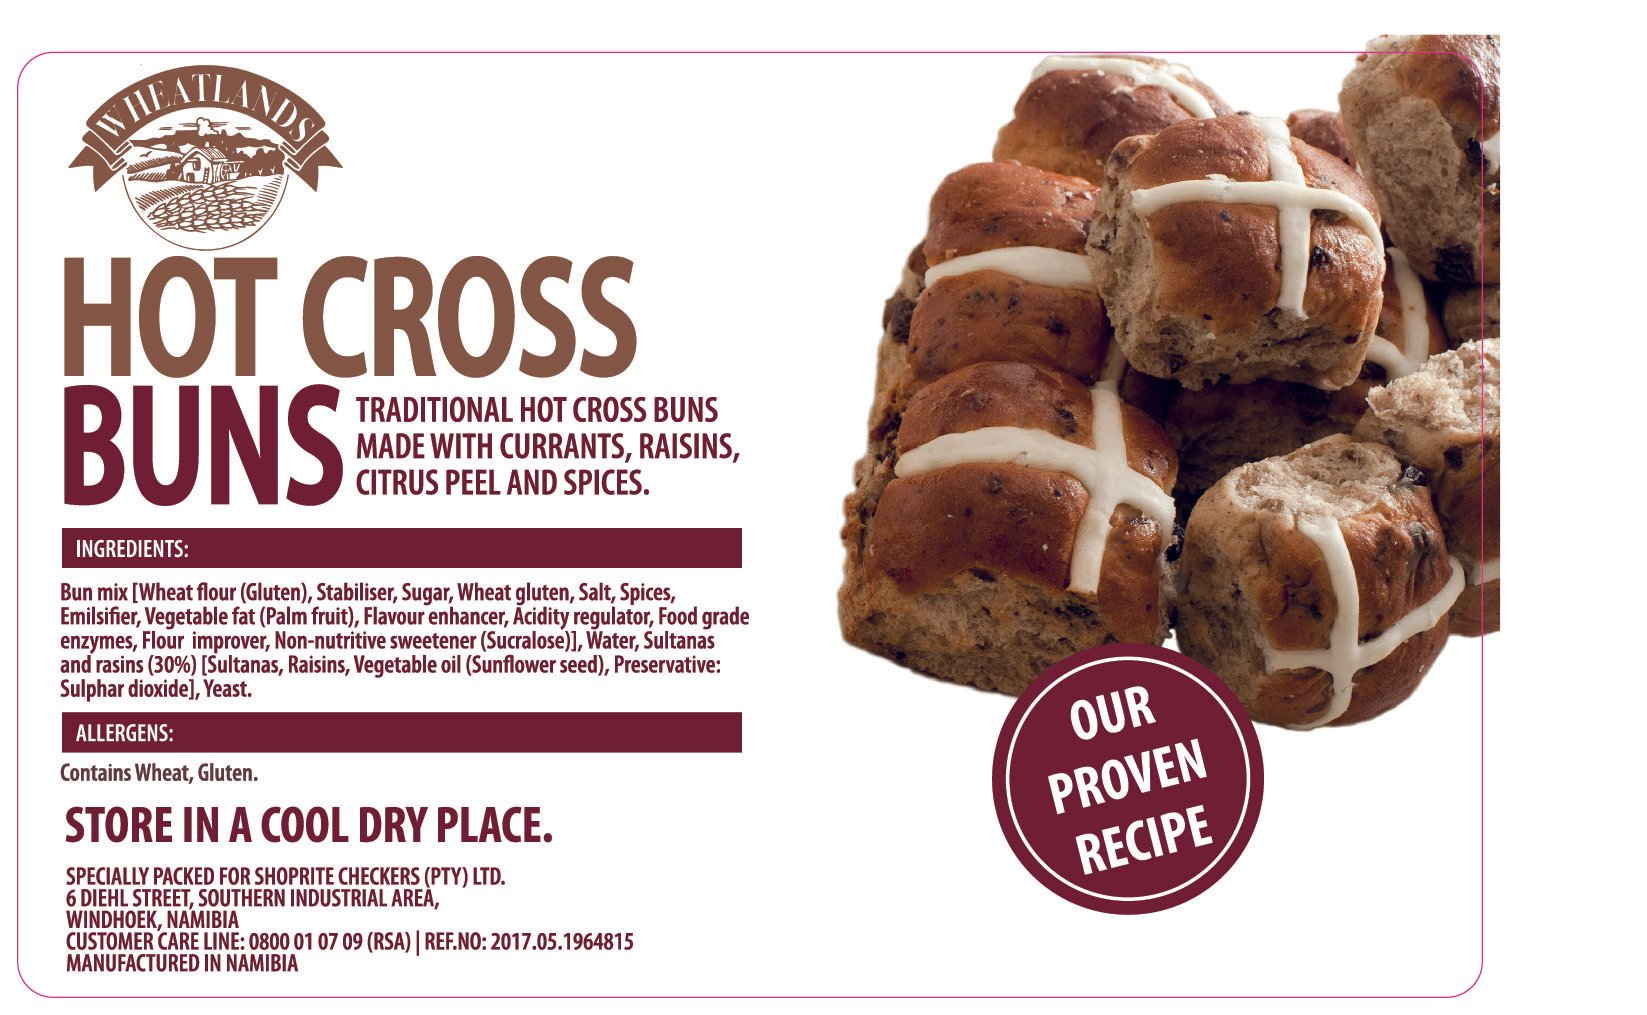 SC Hot Cross Buns 80x124 2